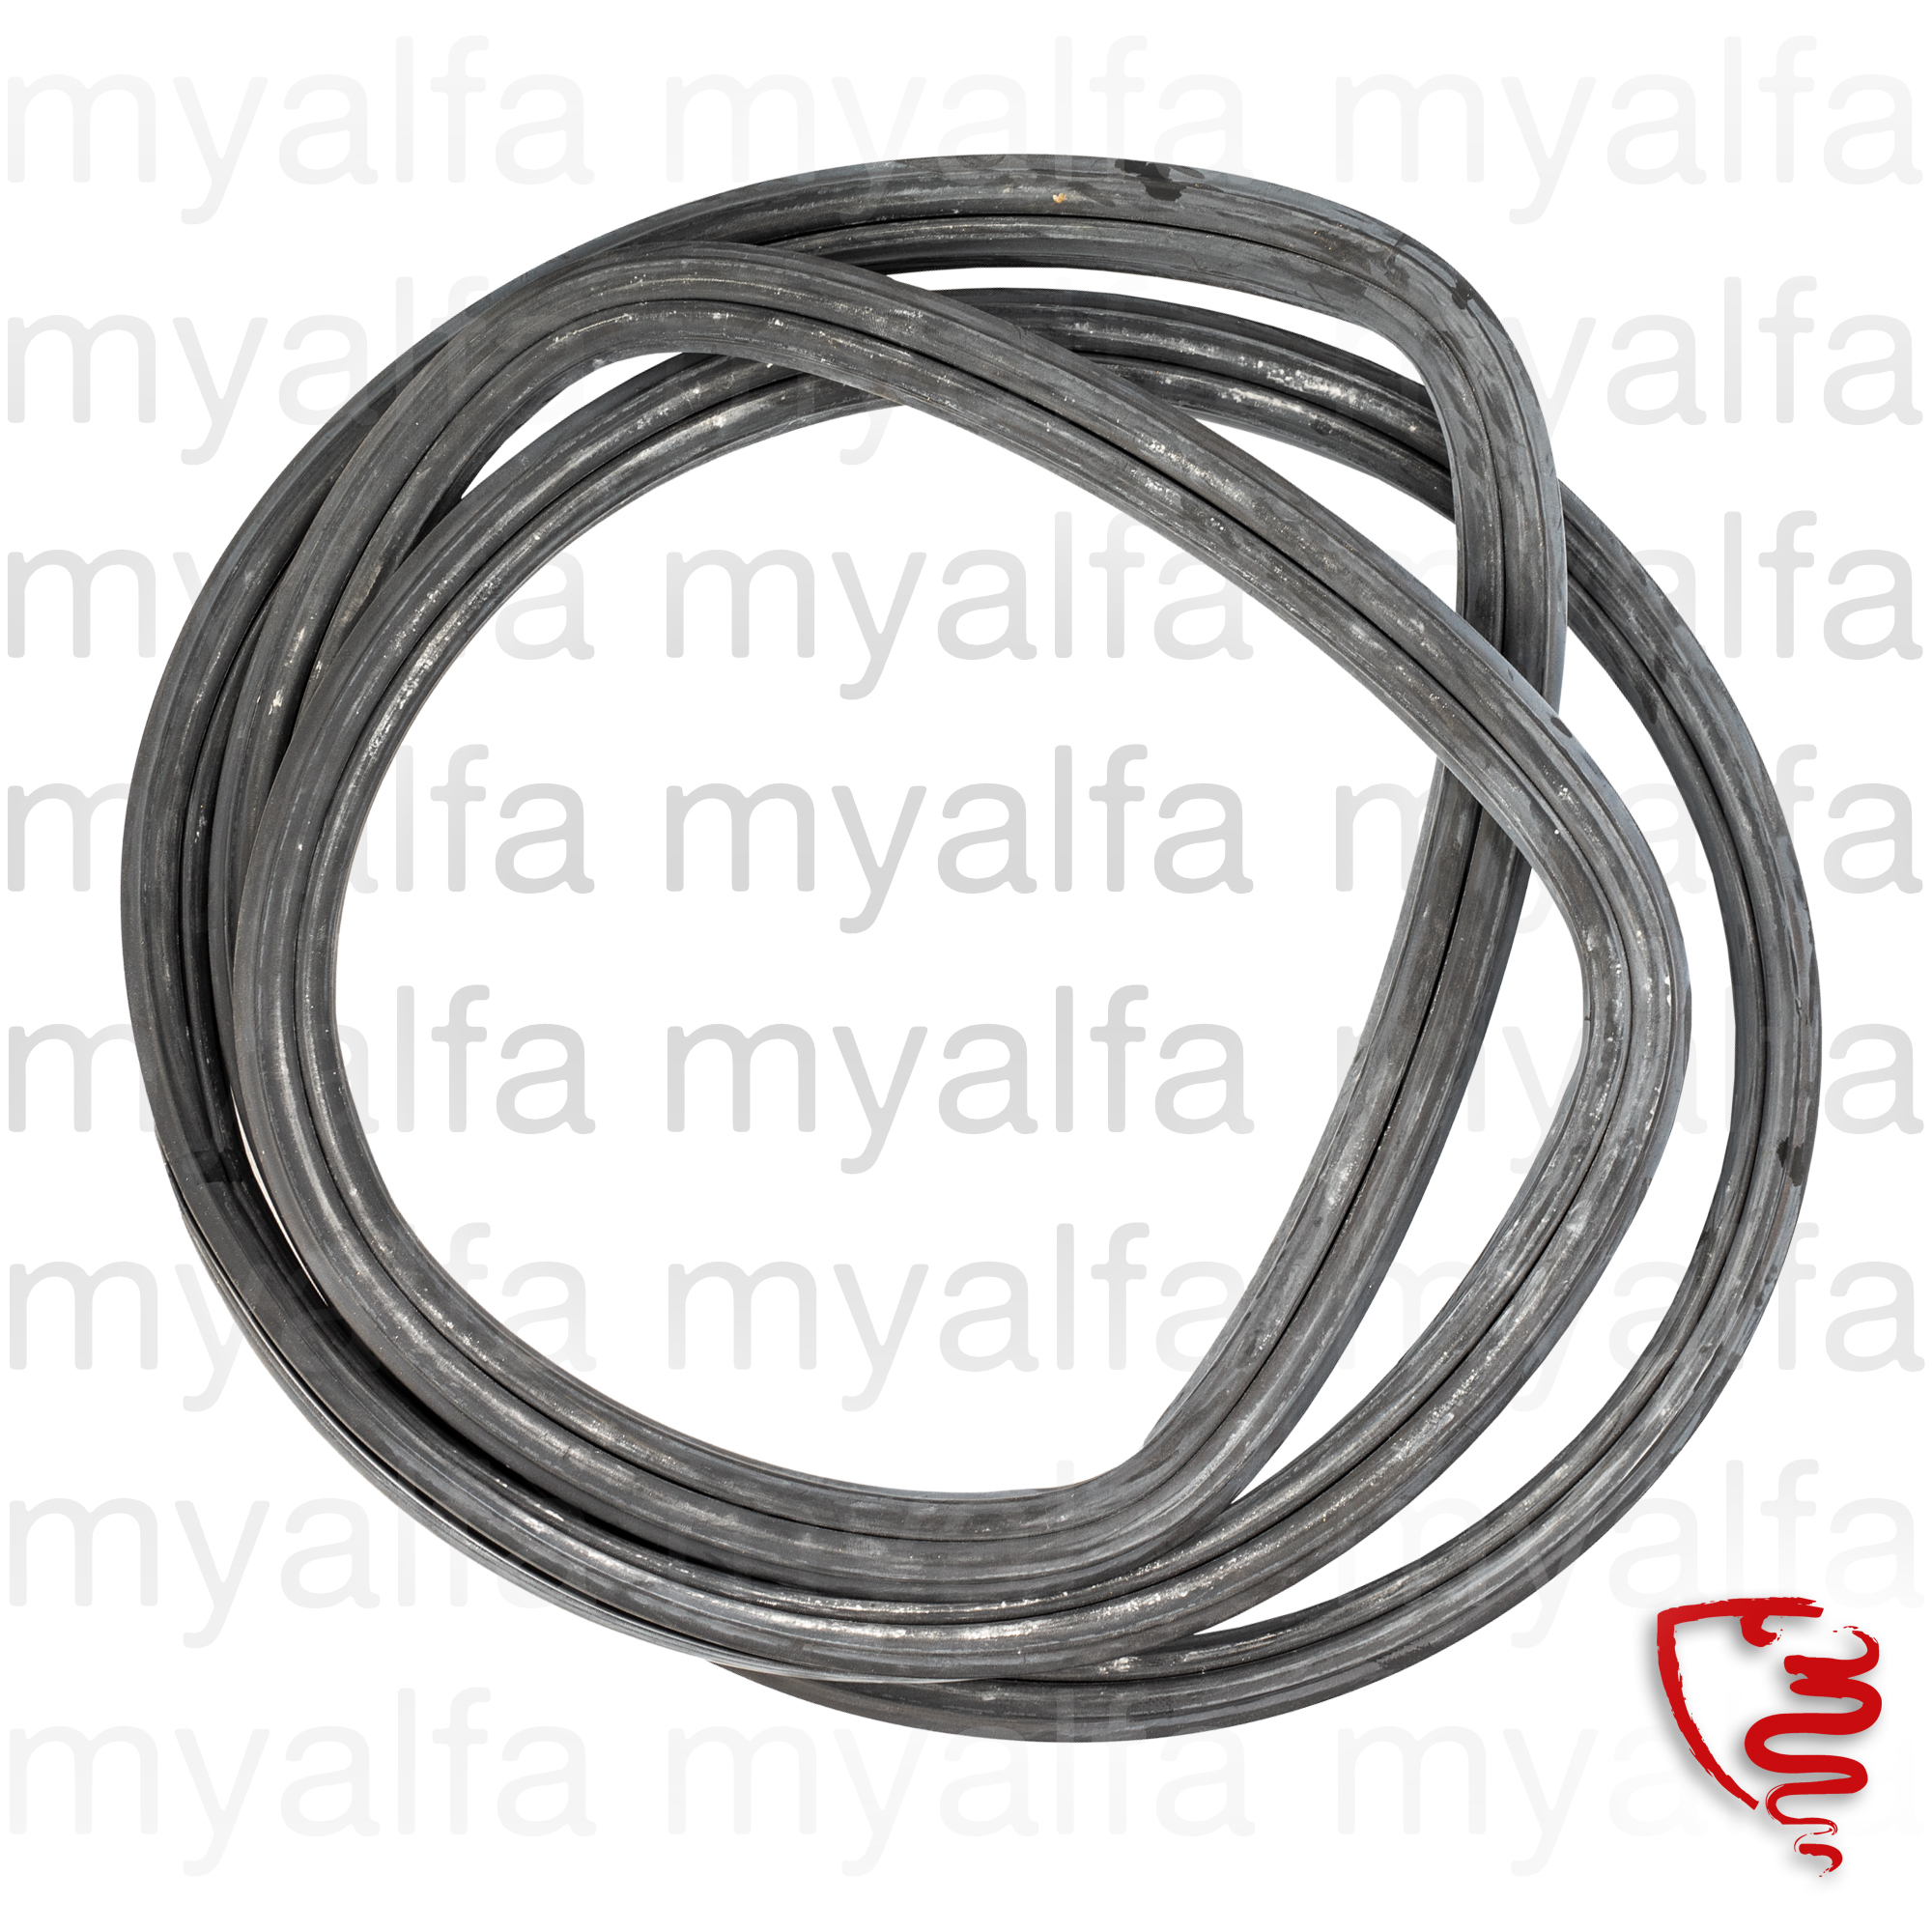 front window rubber Giulietta SS for 750/101, Giulietta SS, Body parts, Rubber parts, Windscreen Front/Back